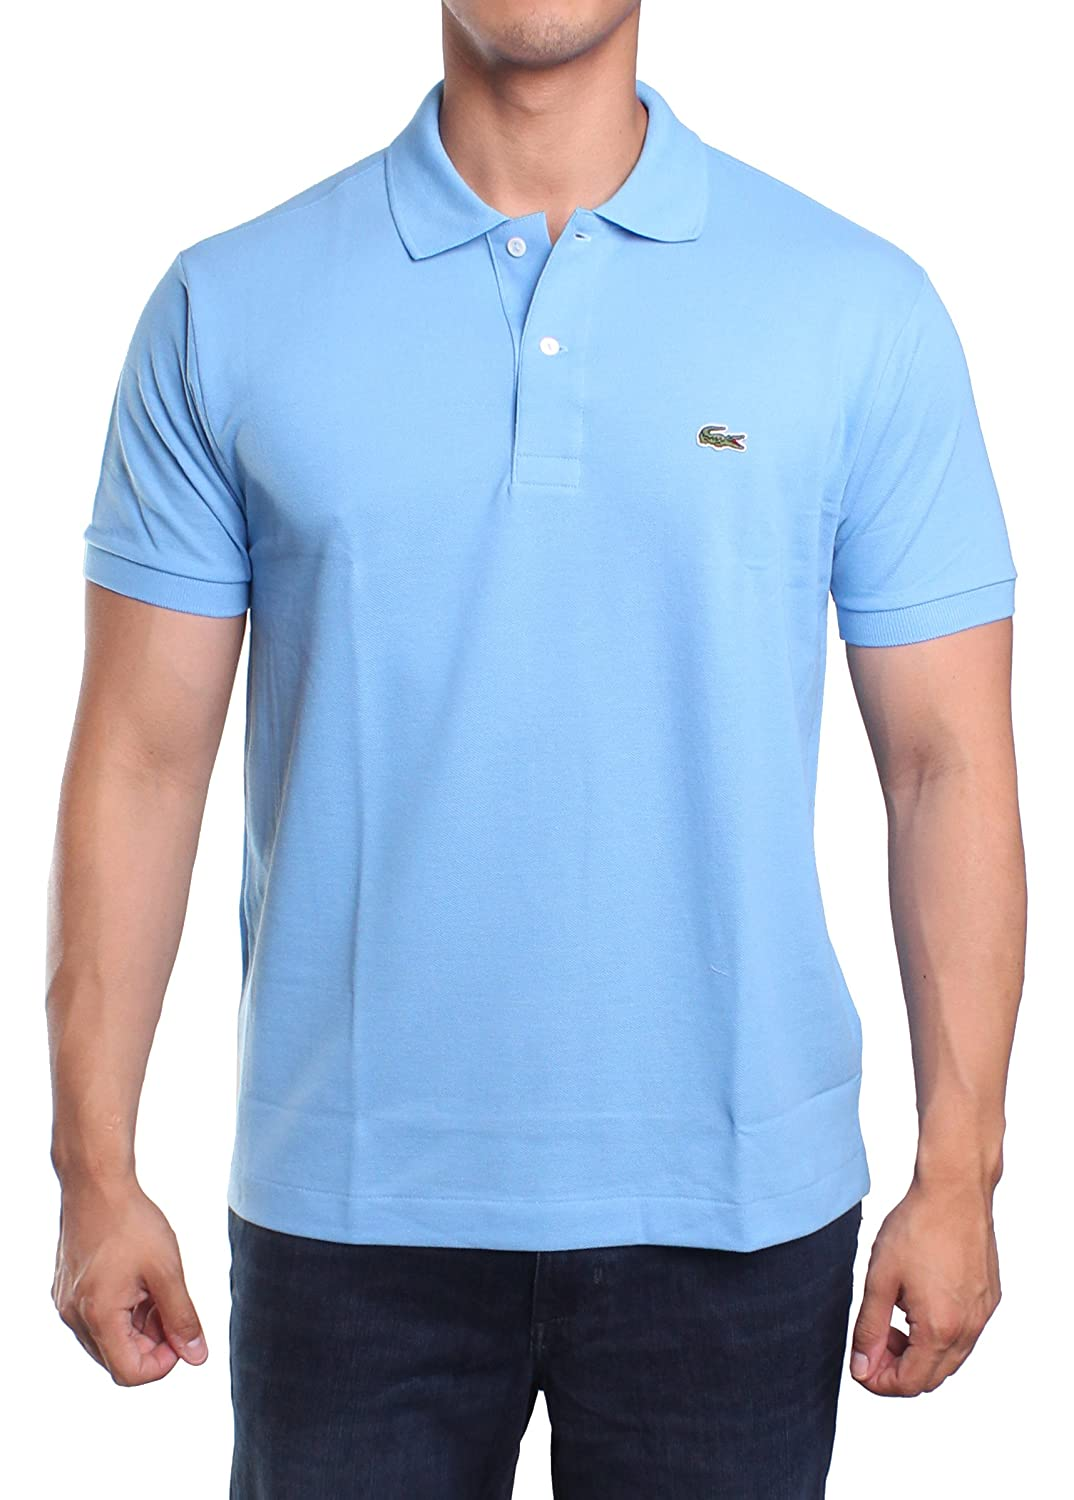 17d126ae6 Lacoste Men s Short Sleeve Pique L.12.12 Classic Fit Polo Shirt ...